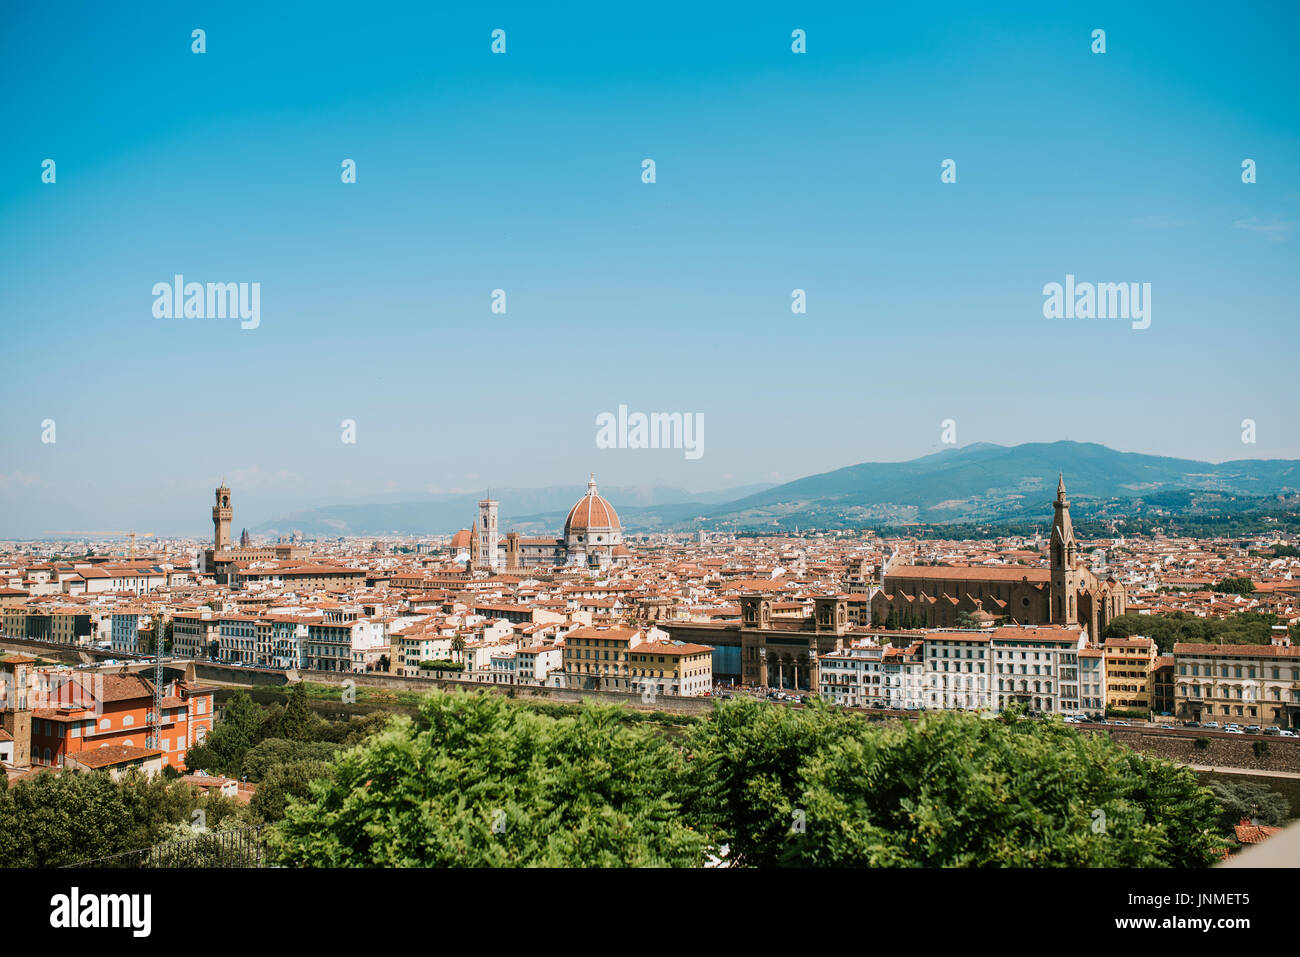 View of Florence from Piazzale Michelangelo, Florence, Italy - Stock Image